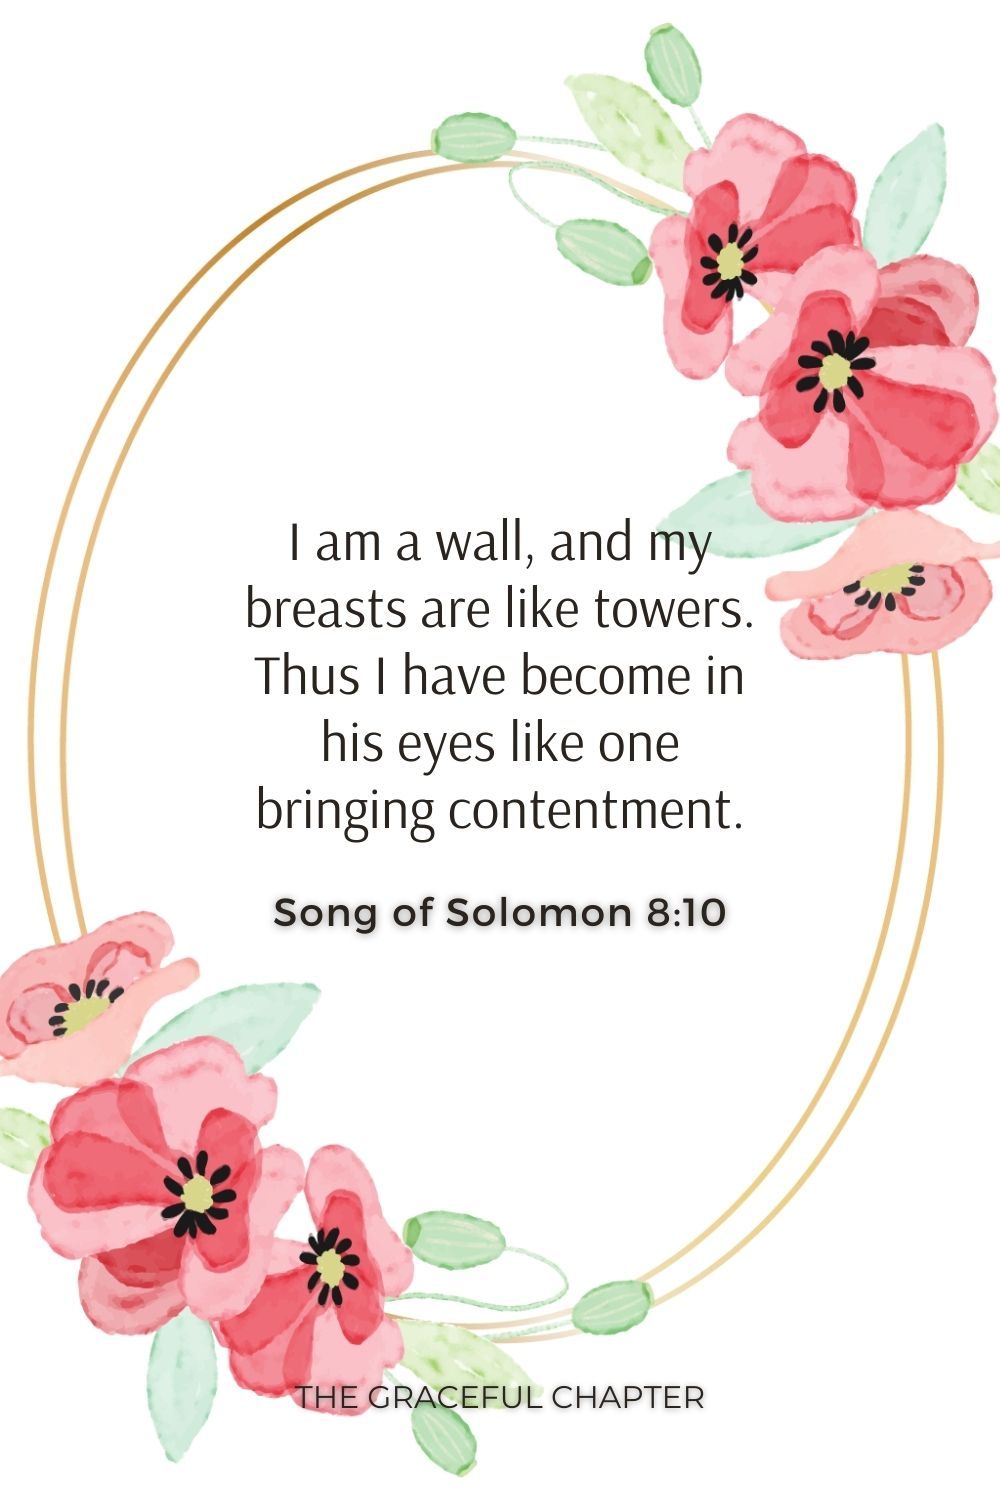 I am a wall, and my breasts are like towers. Thus I have become in his eyes like one bringing contentment. Song of Solomon 8:10